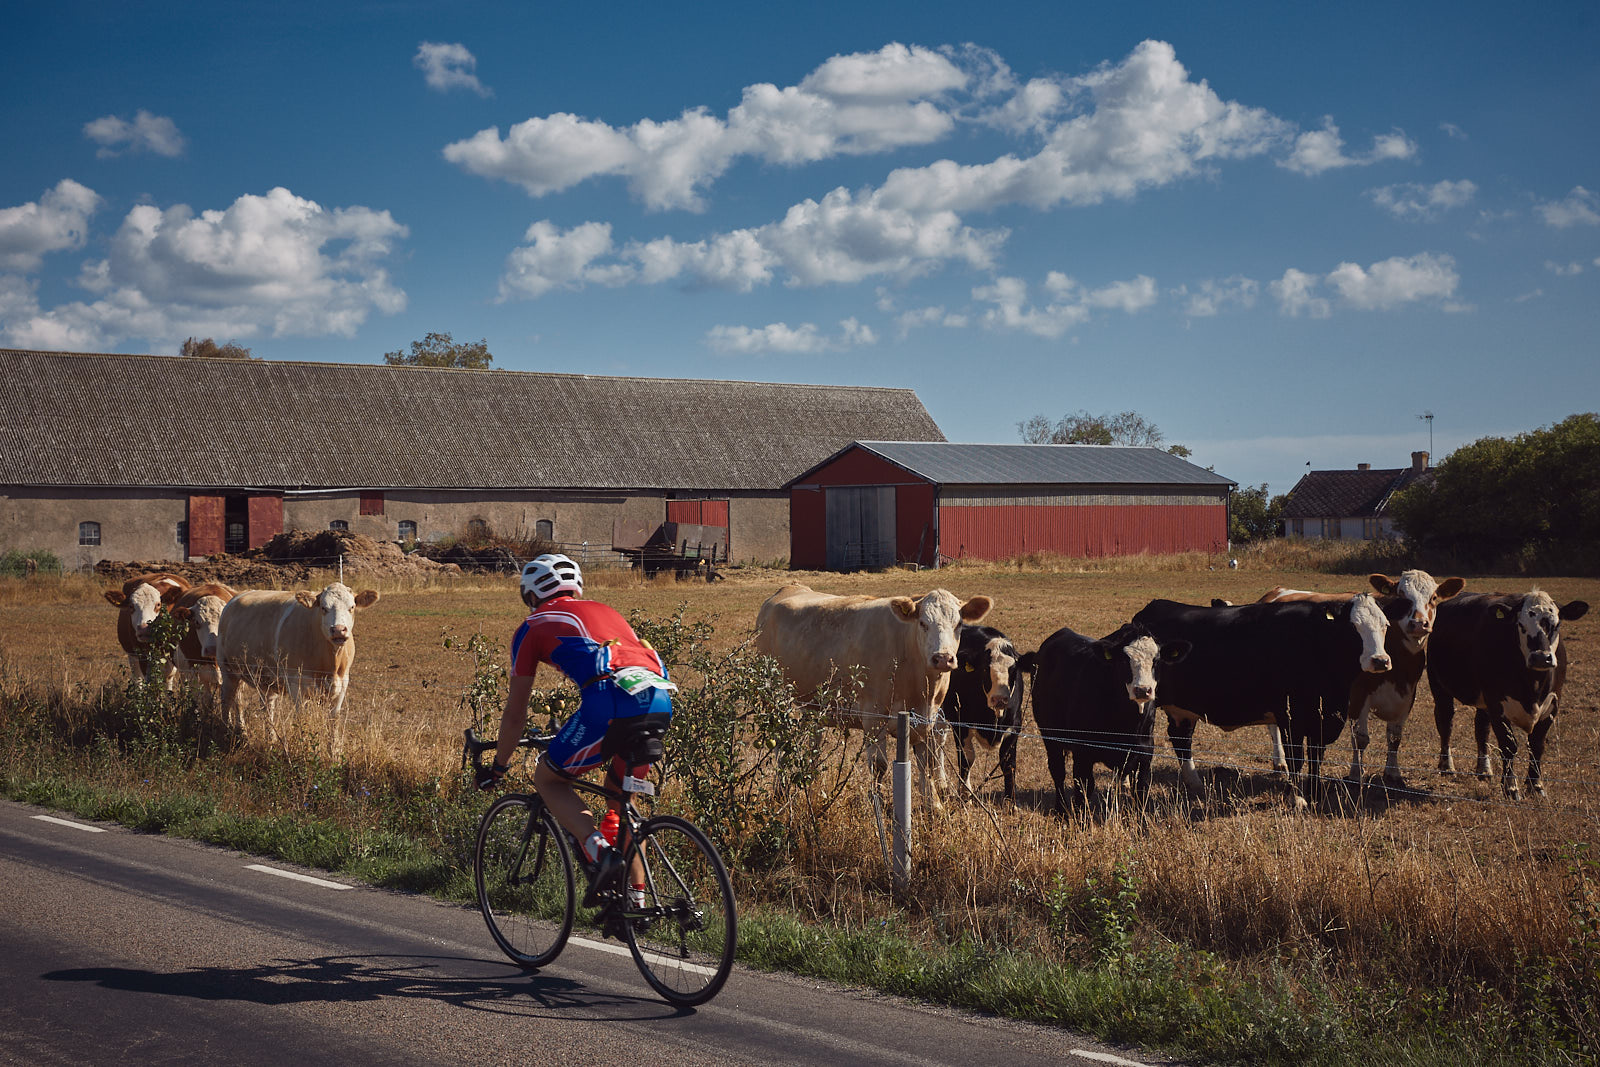 Athletes compete during the biking course of Ironman kalmar on August 18, 2018 in Isle of Oland, Sweden.